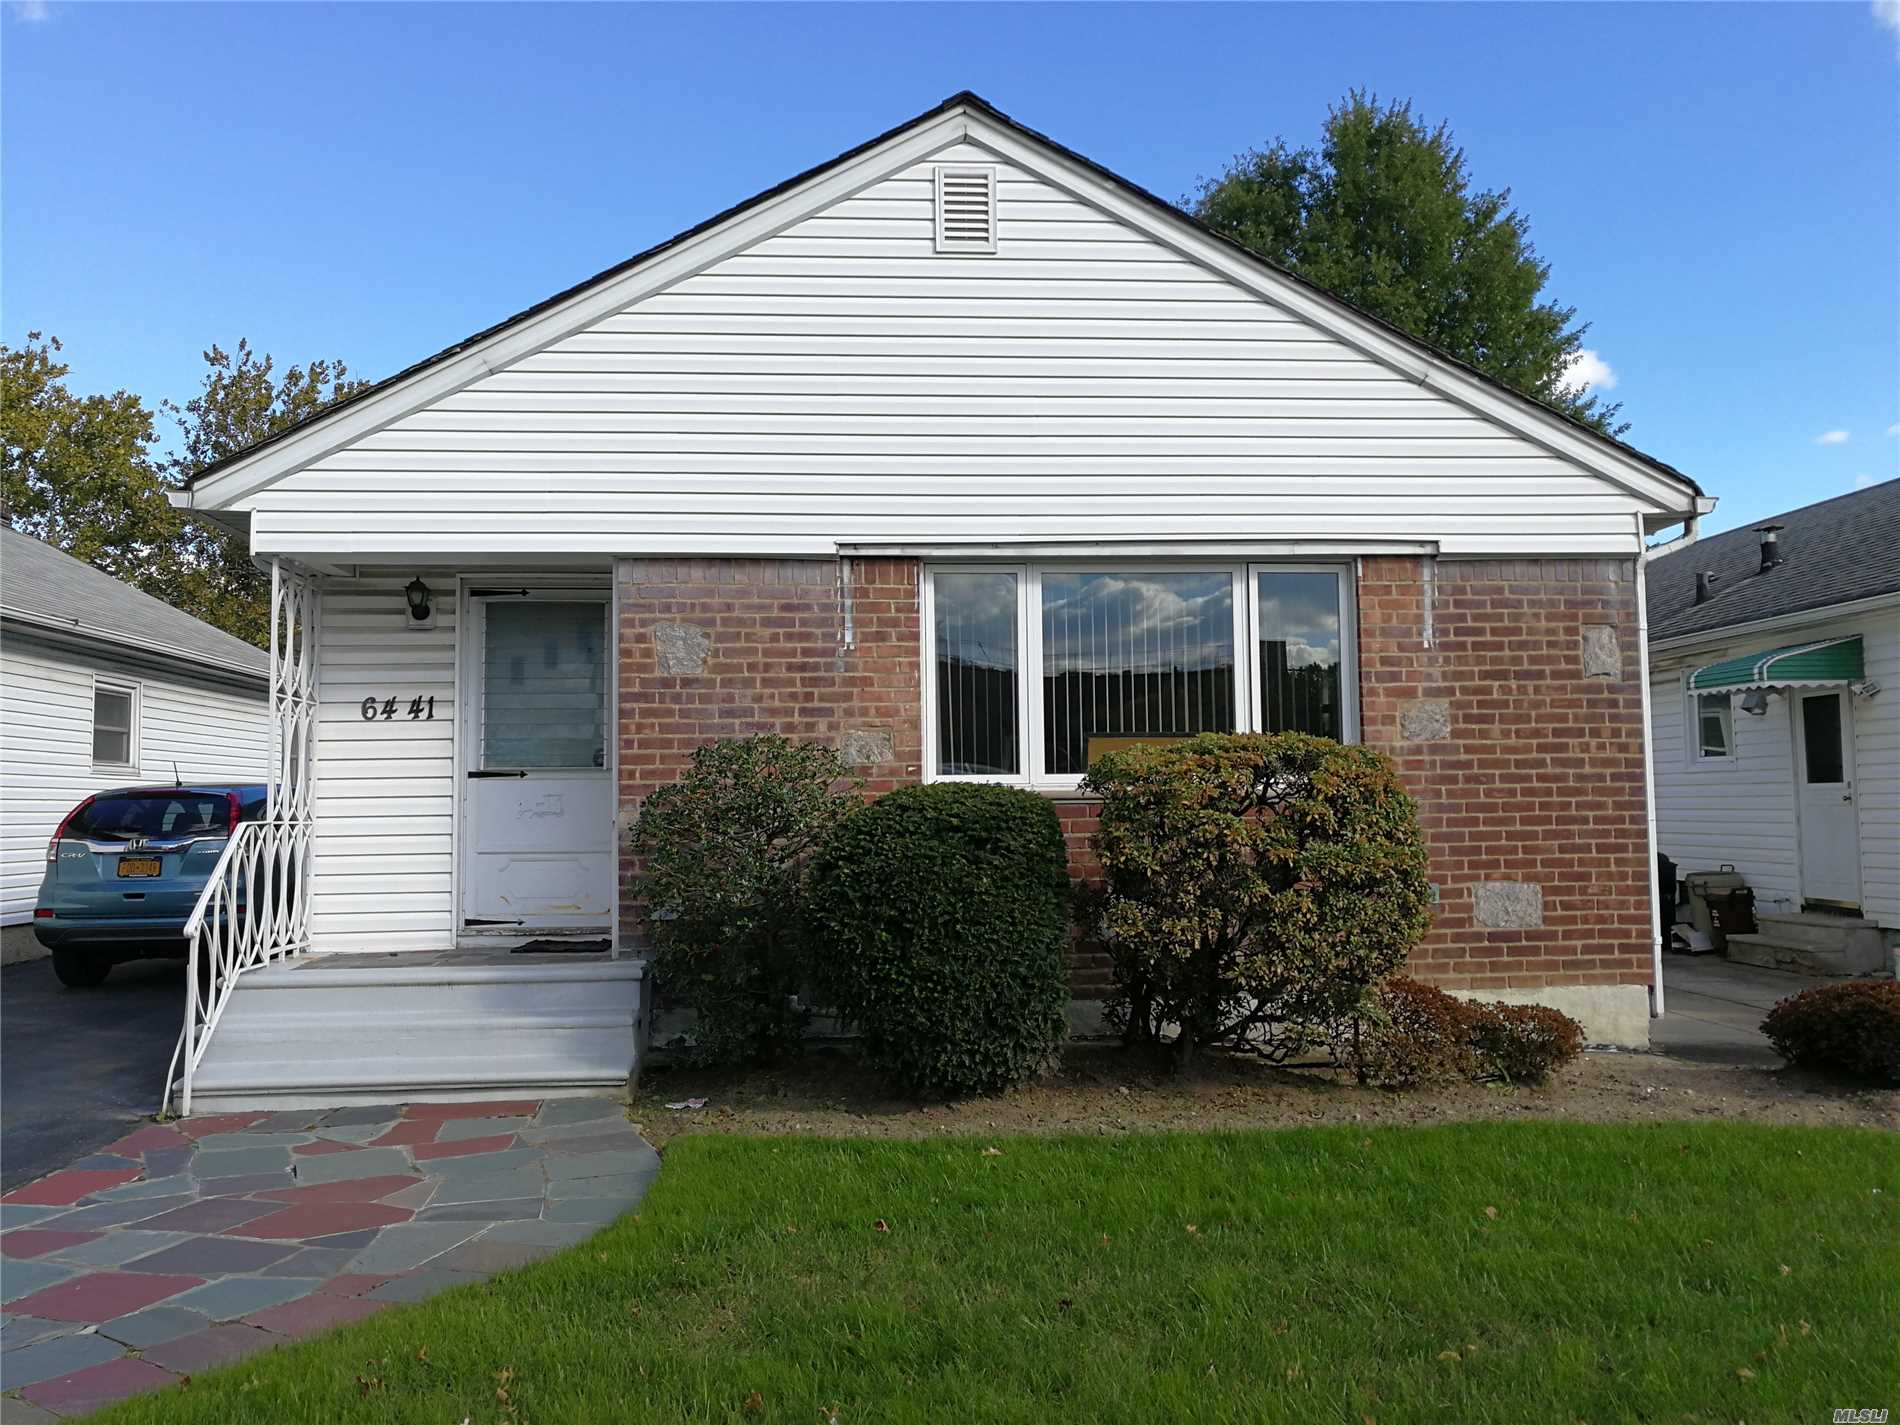 Mint Condition Ranch House Situated In Prime Neighborhood Of Fresh Meadows. It Features 3 Bedrooms, 2 Bathrooms, Eat-In Kitchen With Builtin Dining Counter, Living Room, Formal Dining Room, Full Finished Basement, Long Private Driveway, Detached Garage And Beautiful Backyard. The Property Has Lot Size Of 40X97.42 And Building Size Of 25.67X48.17. It Is Only Two Blocks To Q17, Q88, Q30, Q31 Bus Stops And It Is Close To Schools, Highways, Shops, Parks And All. School District #26. A Must See.